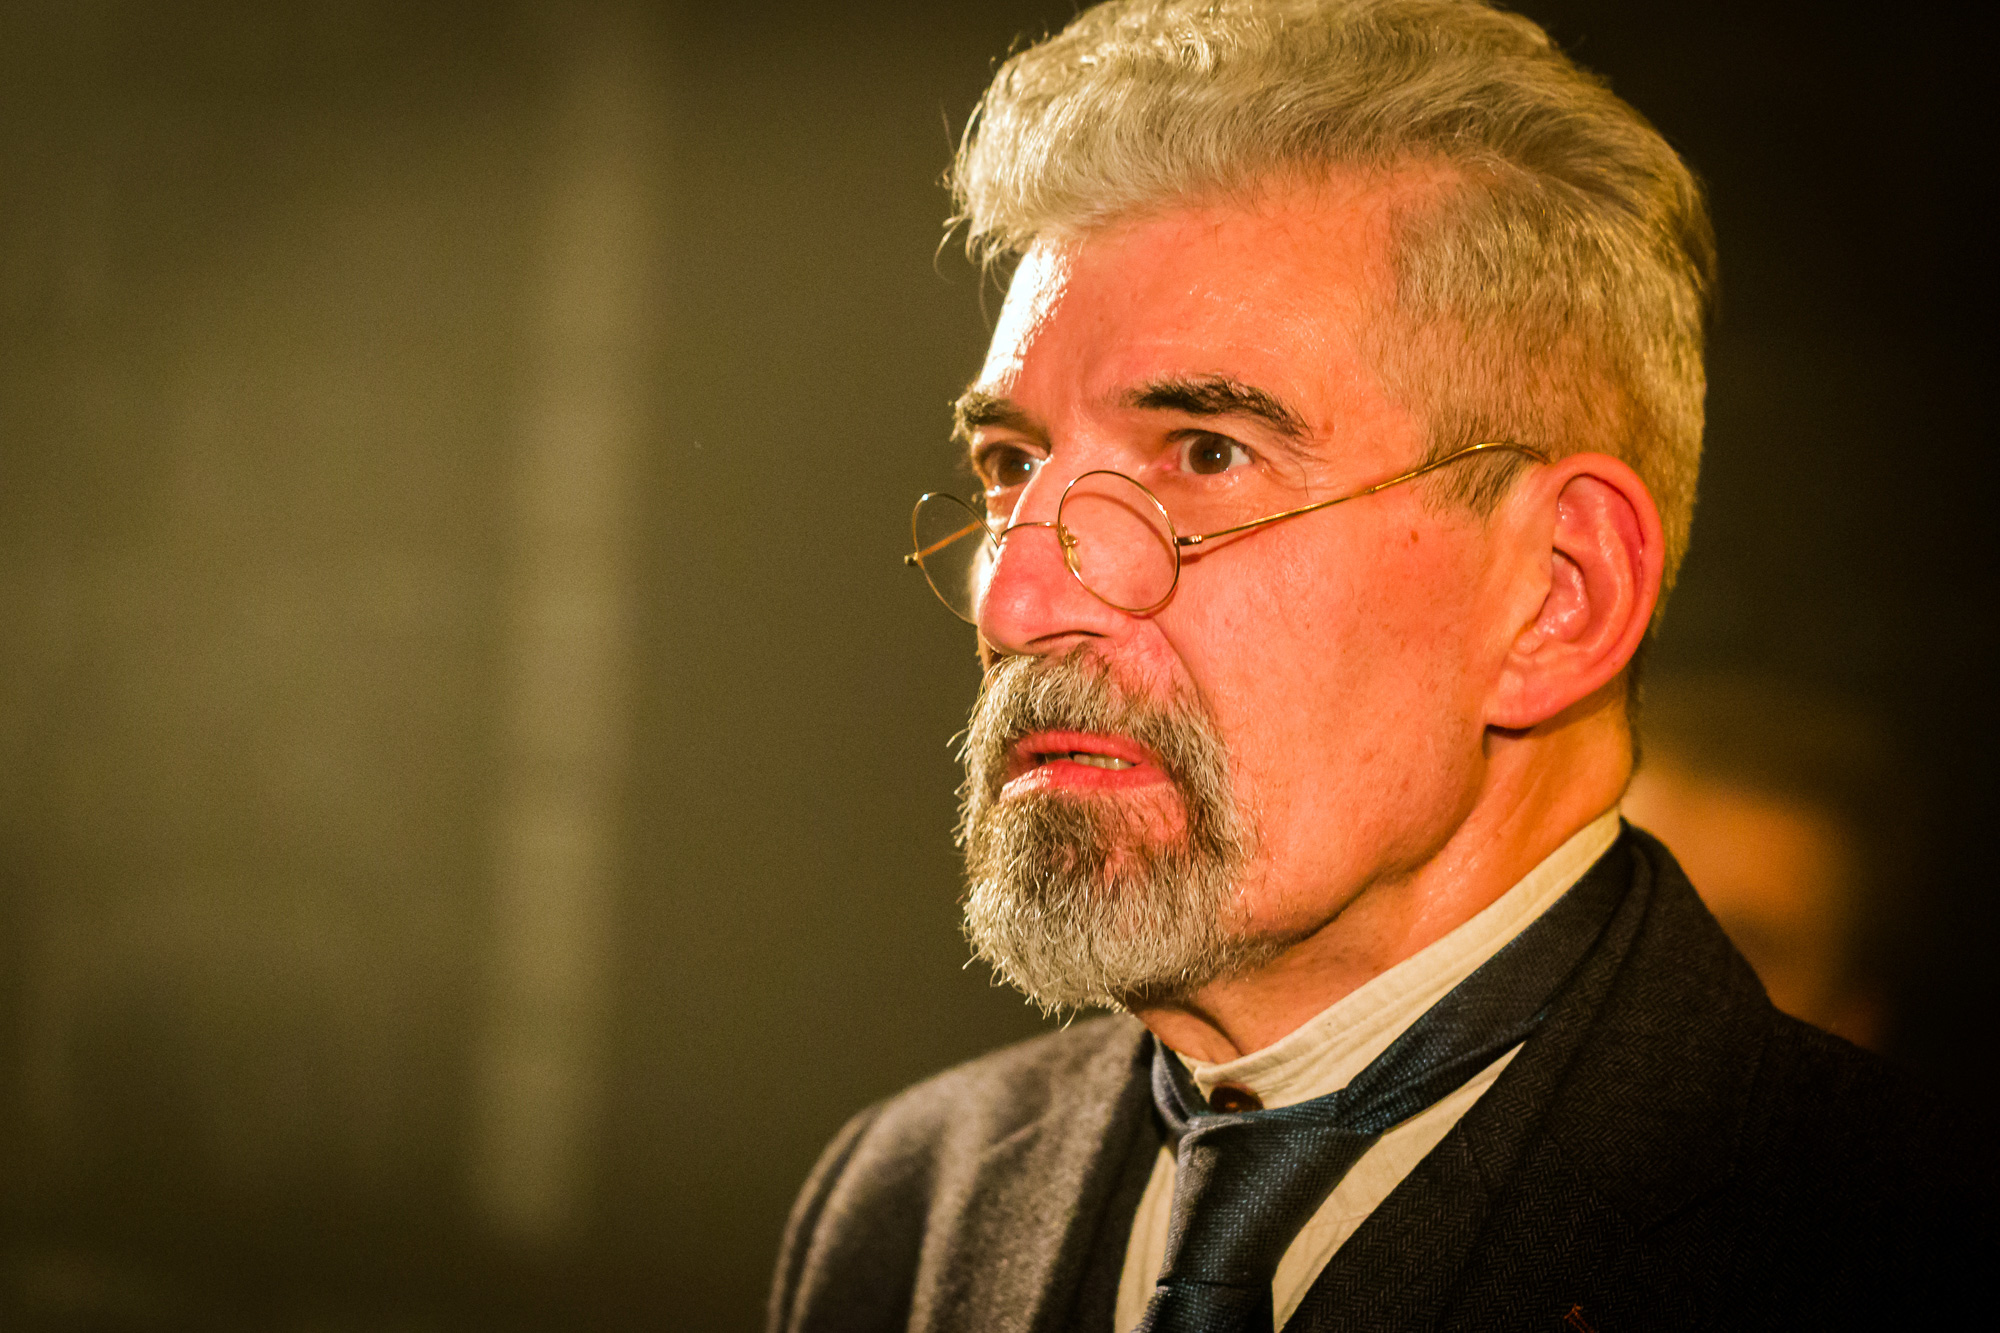 Head and shoulders photo of a middle-aged grey haired man with goatee beard. He wears round, wire-rimmed glasses. His shirt has no collar and is fastened with a stud, with a dark green tie and dark jacket.